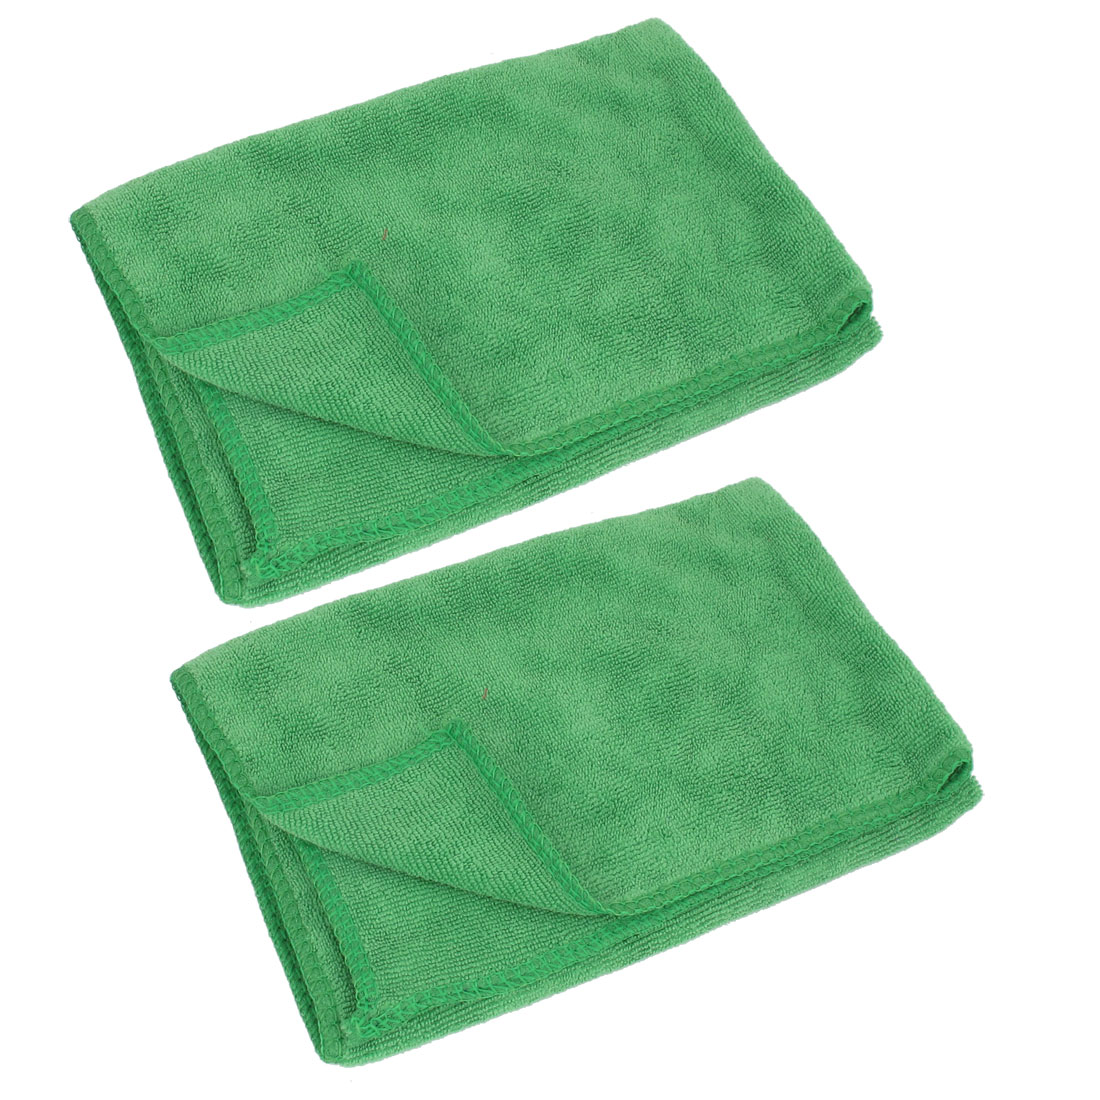 2 Pcs Green Car Microfiber Washing Cleaning Clean Towel 40cm x 40cm